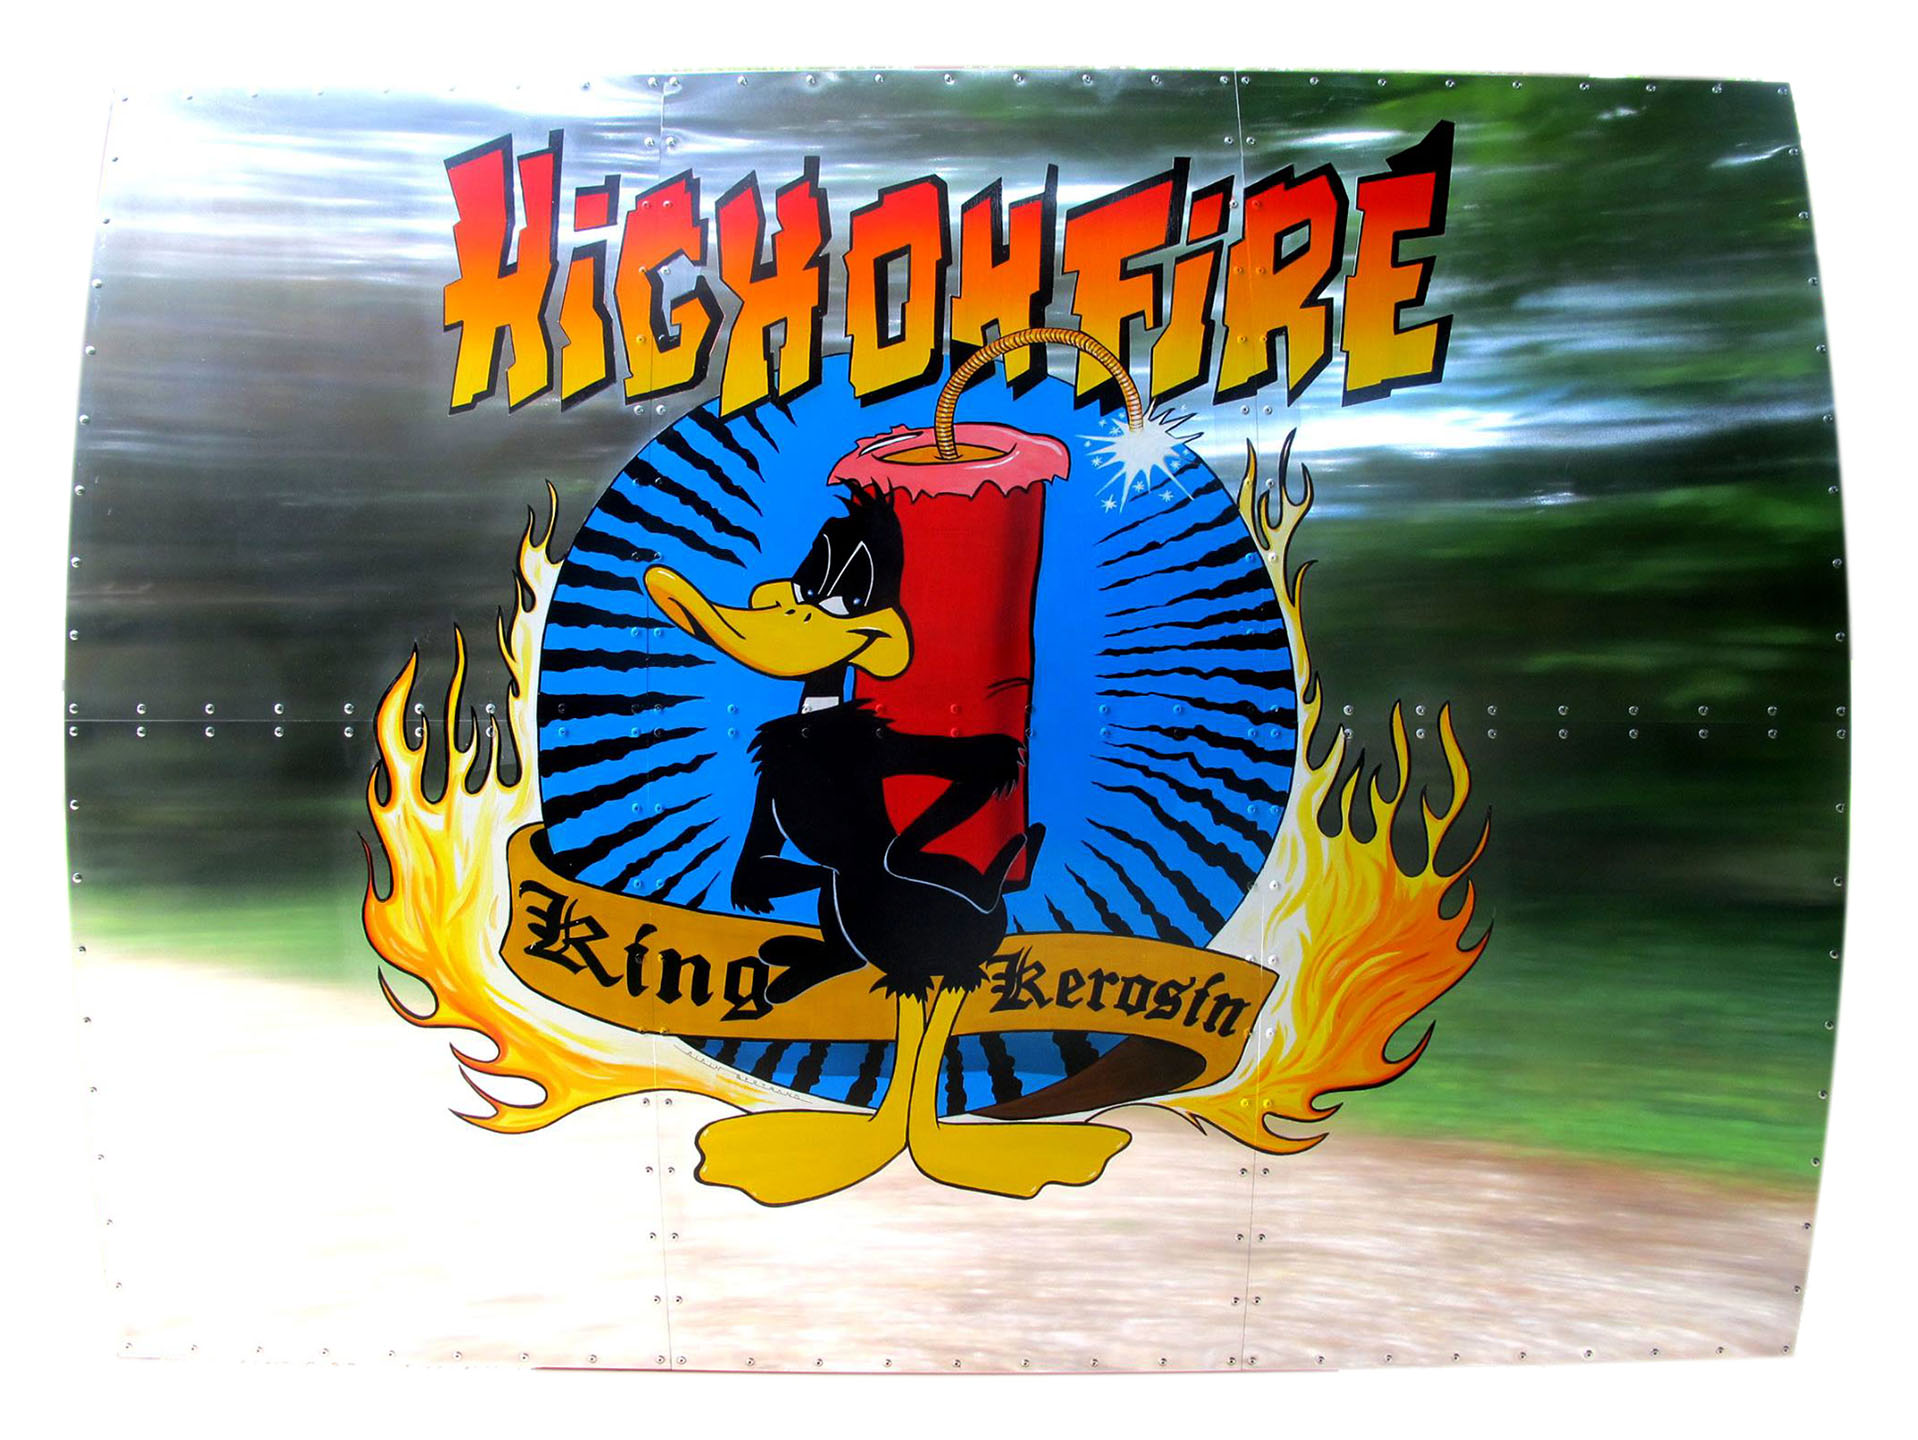 NOSE ART HIGHT ON FIRE 120X160